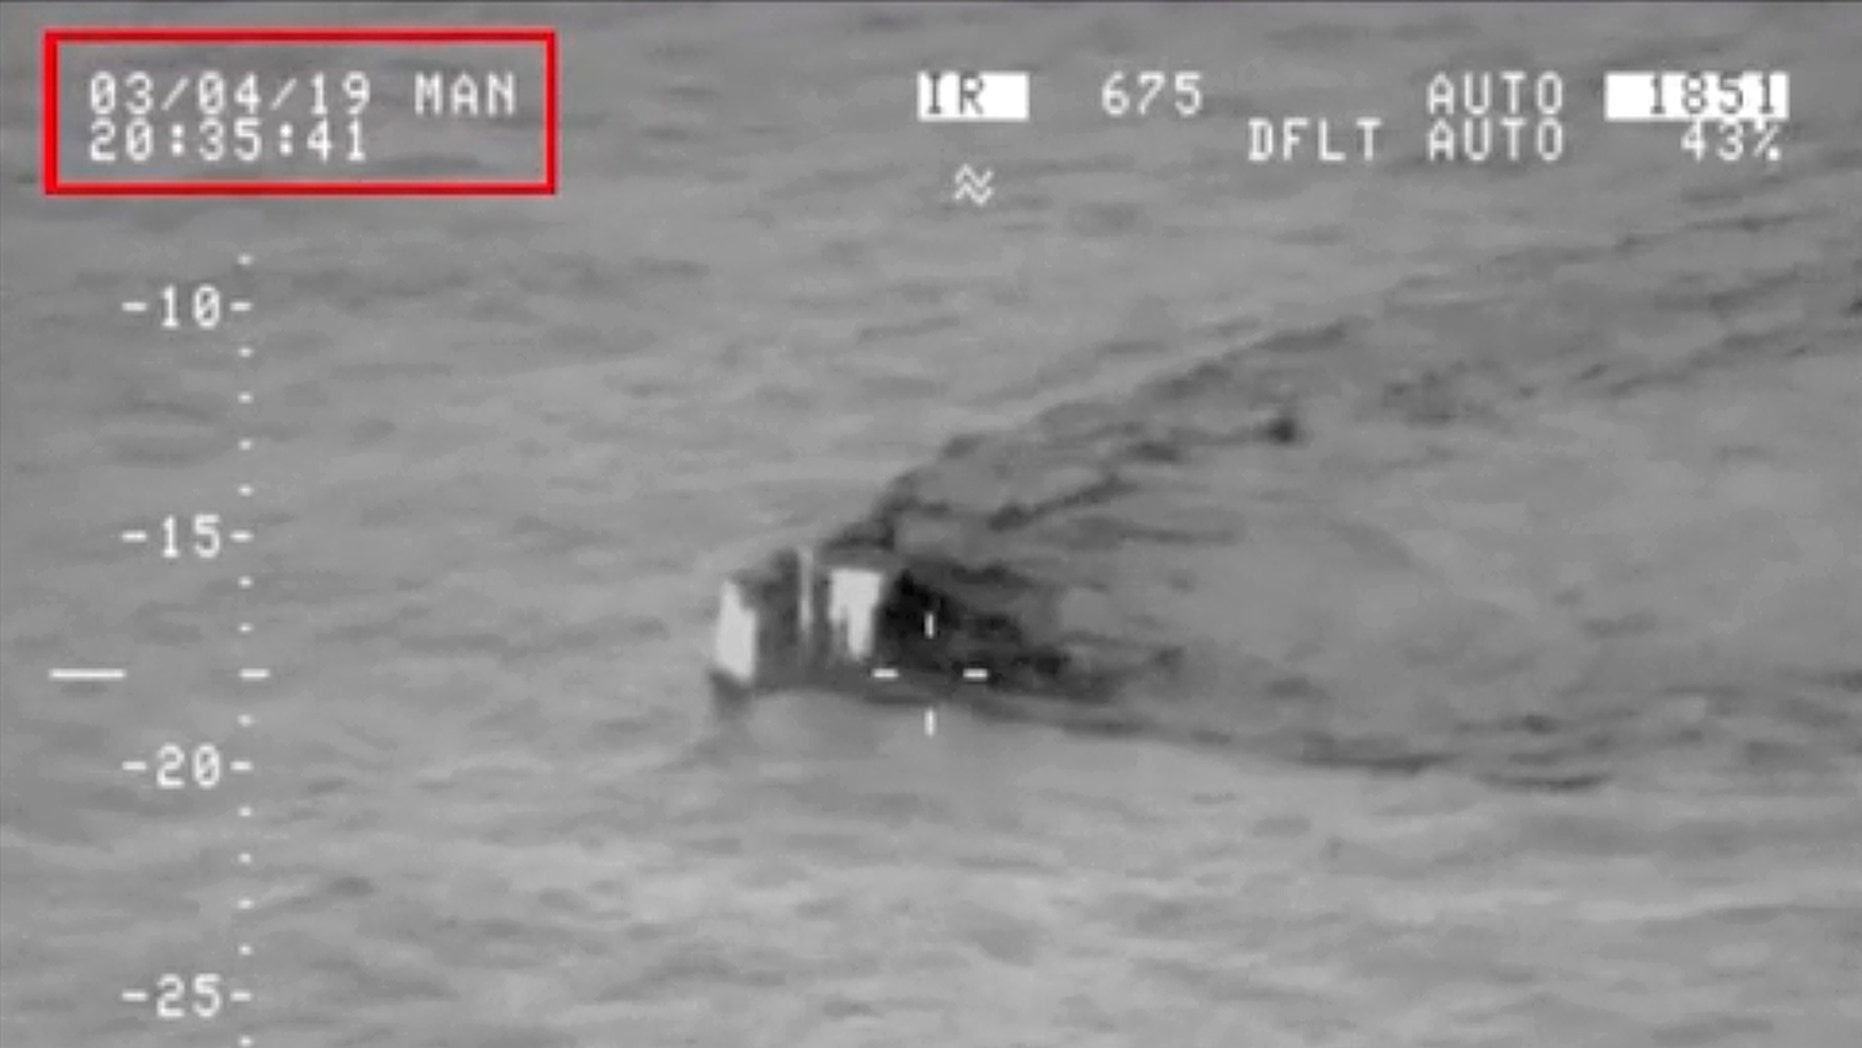 """In this image made from video taken on March 4, 2019, and released on Tuesday, March 5, 2019, by the Pakistan Military, shows what they claim is an Indian submarine approaching its territorial waters in the Arabian Sea. Pakistan's navy says the submarine was not targeted, """"keeping in view Pakistan's policy of peace"""" under which Islamabad wants to de-escalate tensions with New Delhi."""